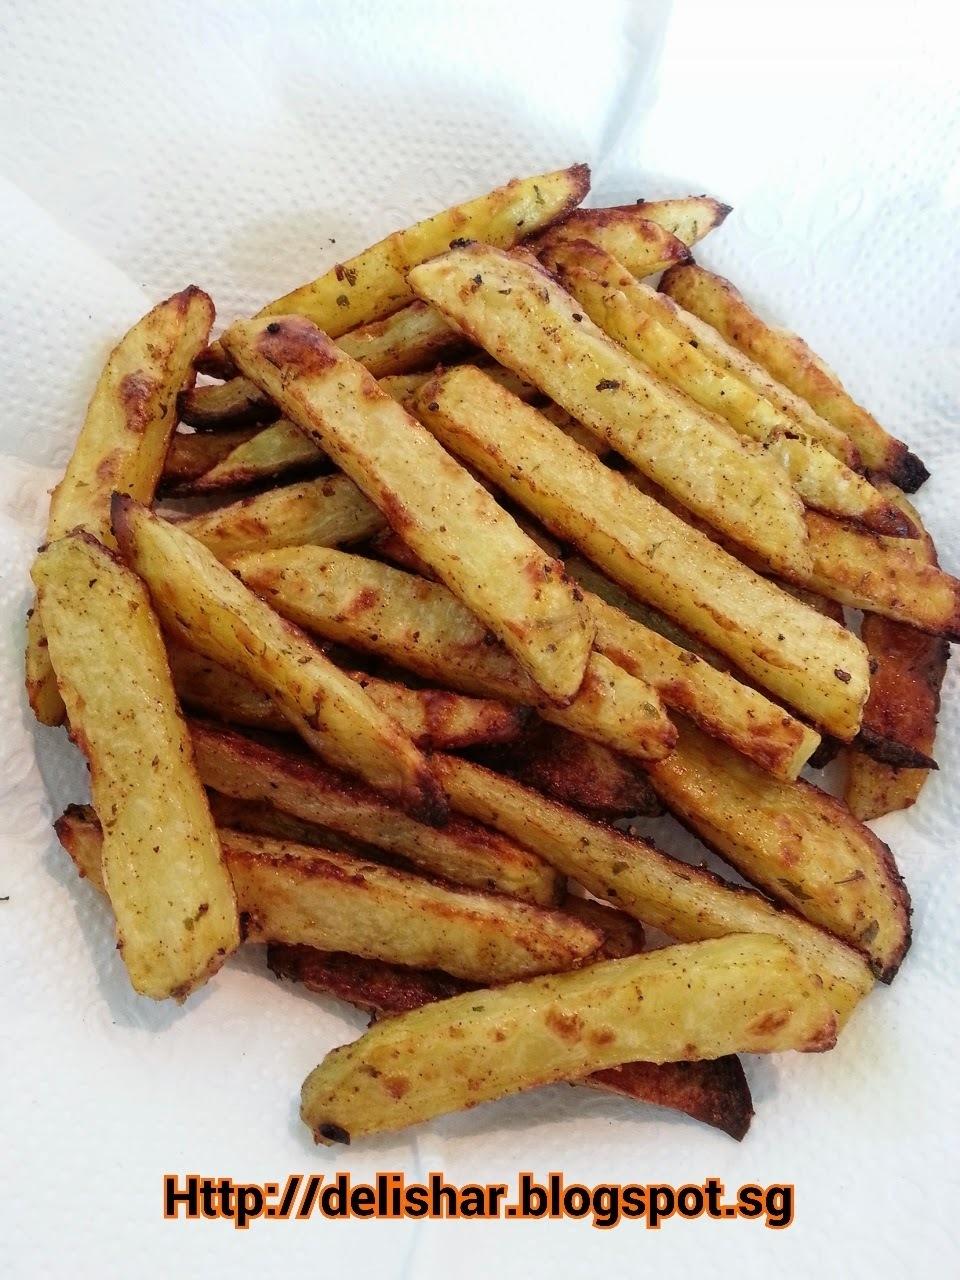 Hand Cut Baked Fries